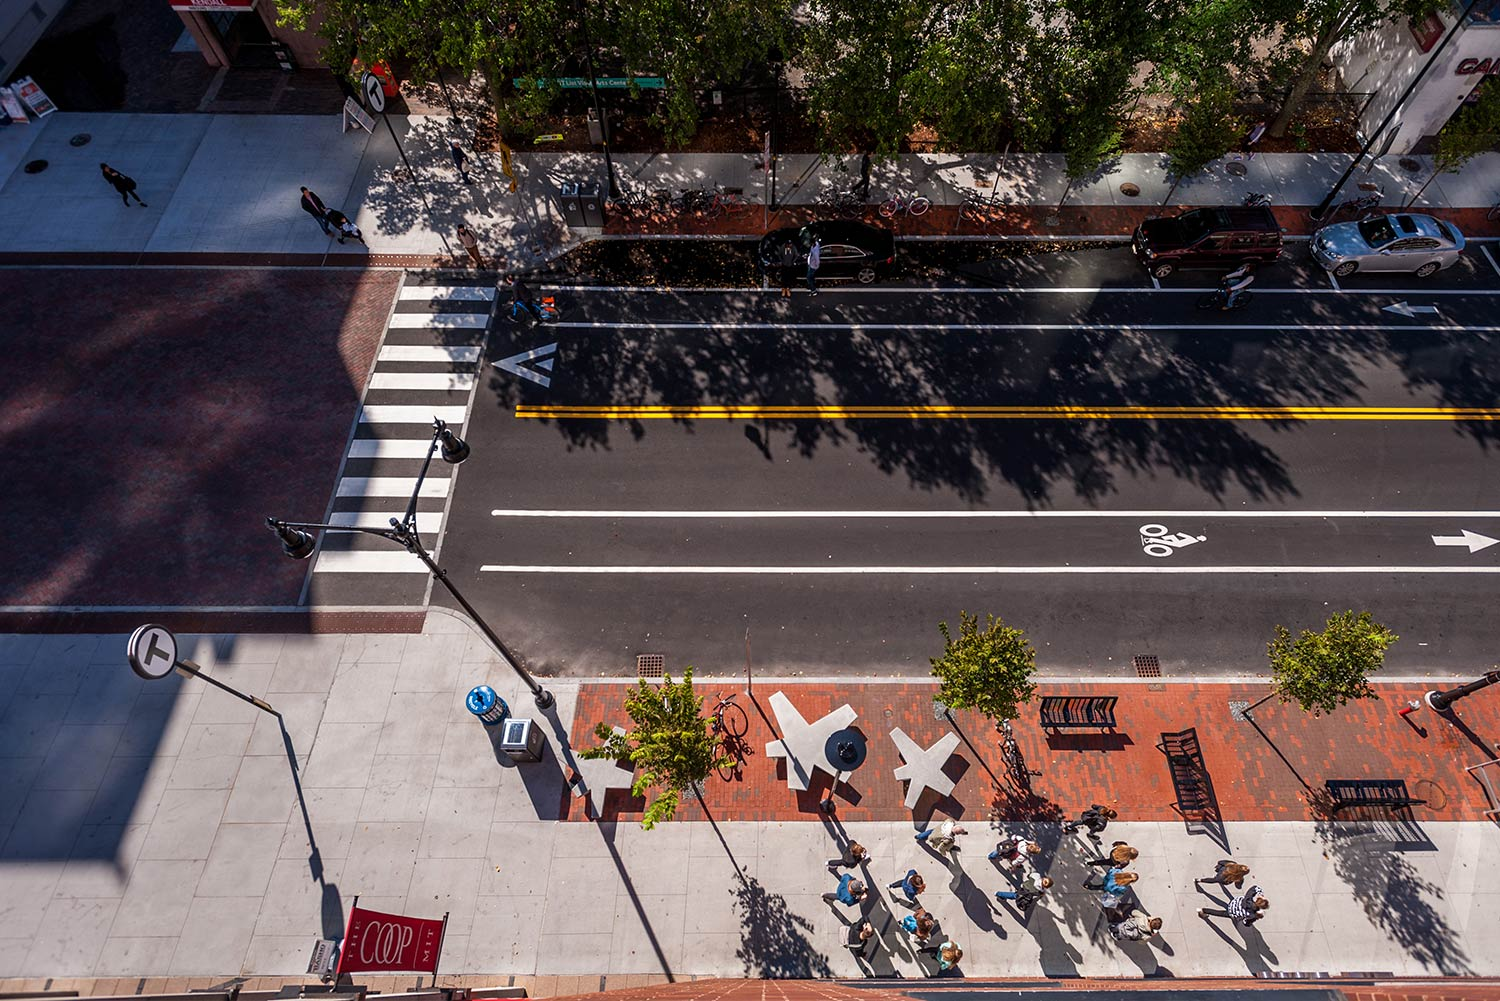 Kendall-Square_complete-streets-pixelated-paving-pattern_Klopfer-Martin.jpg